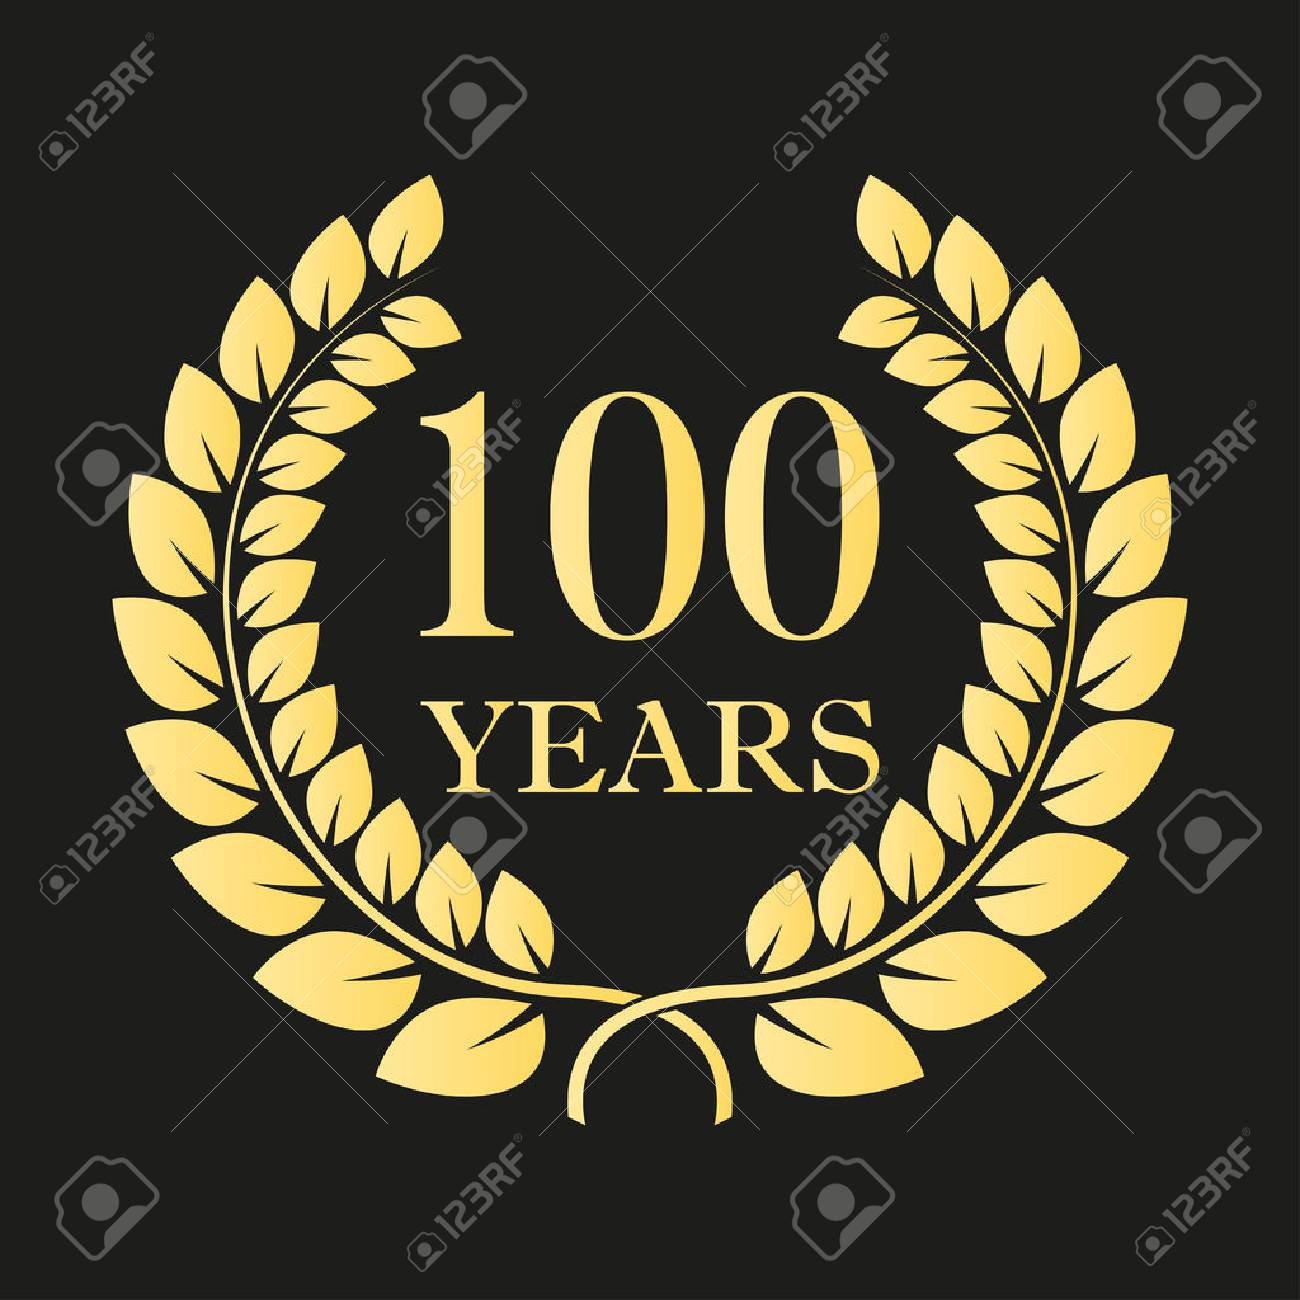 100 years anniversary laurel wreath icon or sign. Template for celebration and congratulation design. 100th anniversary golden label. Vector illustration. - 94044450